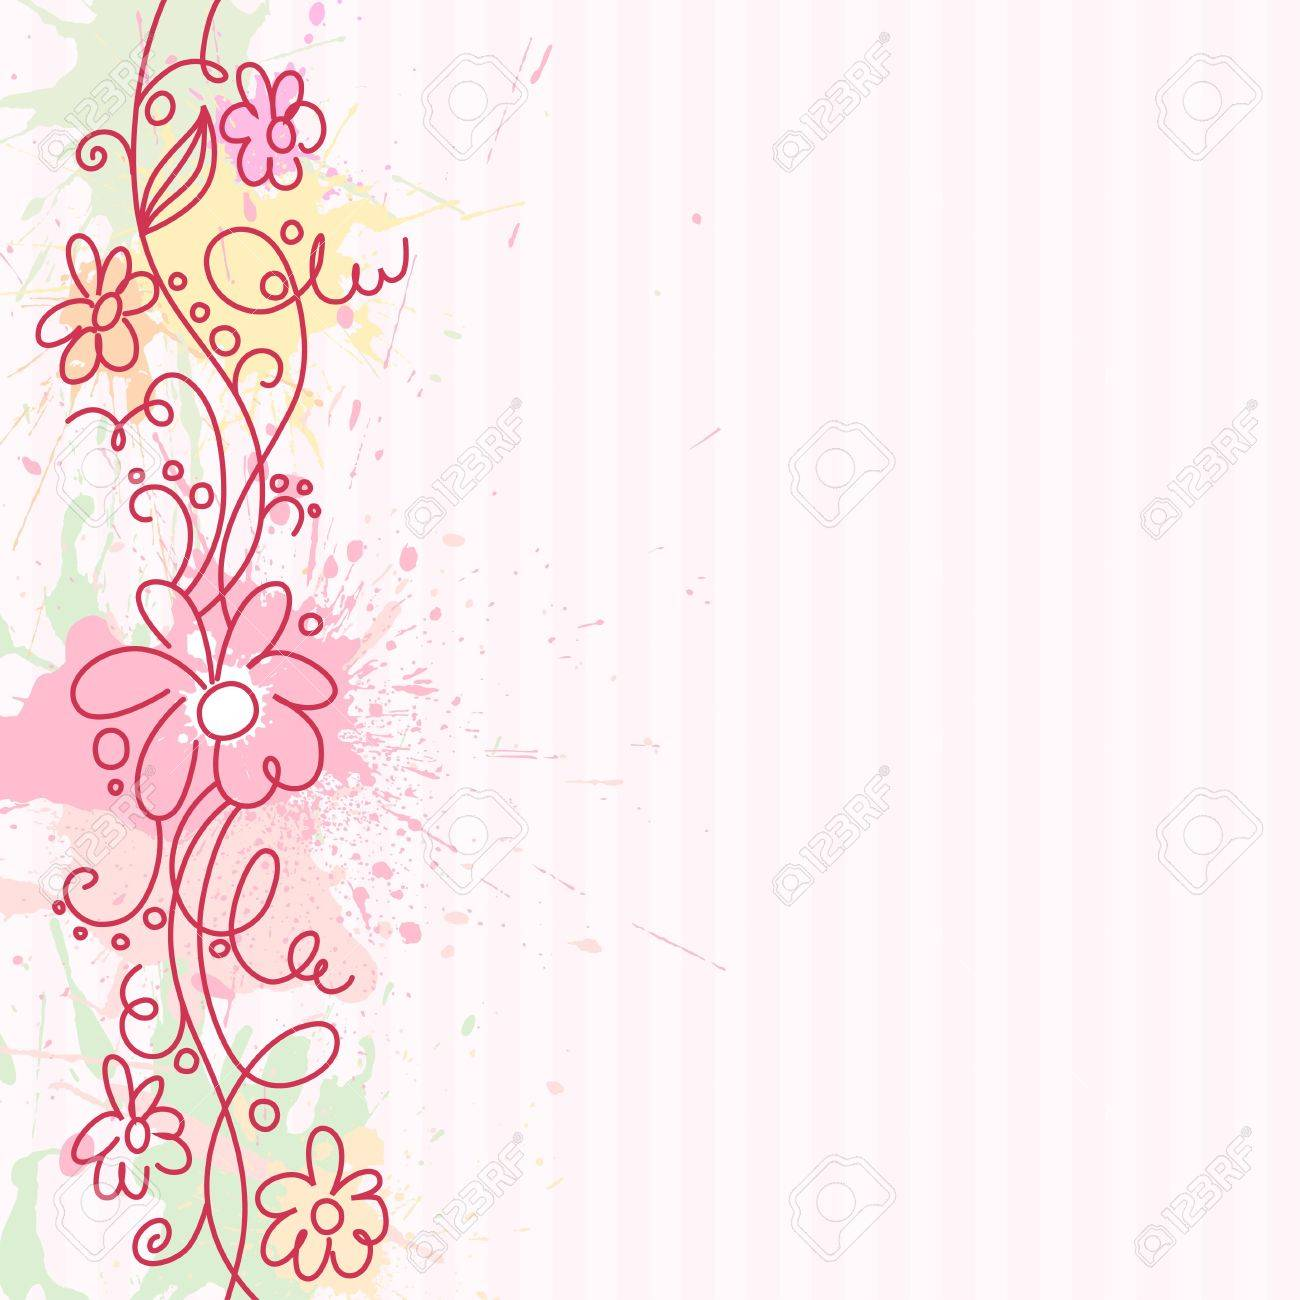 A square background with vertical decorative border Stock Photo - 7927040